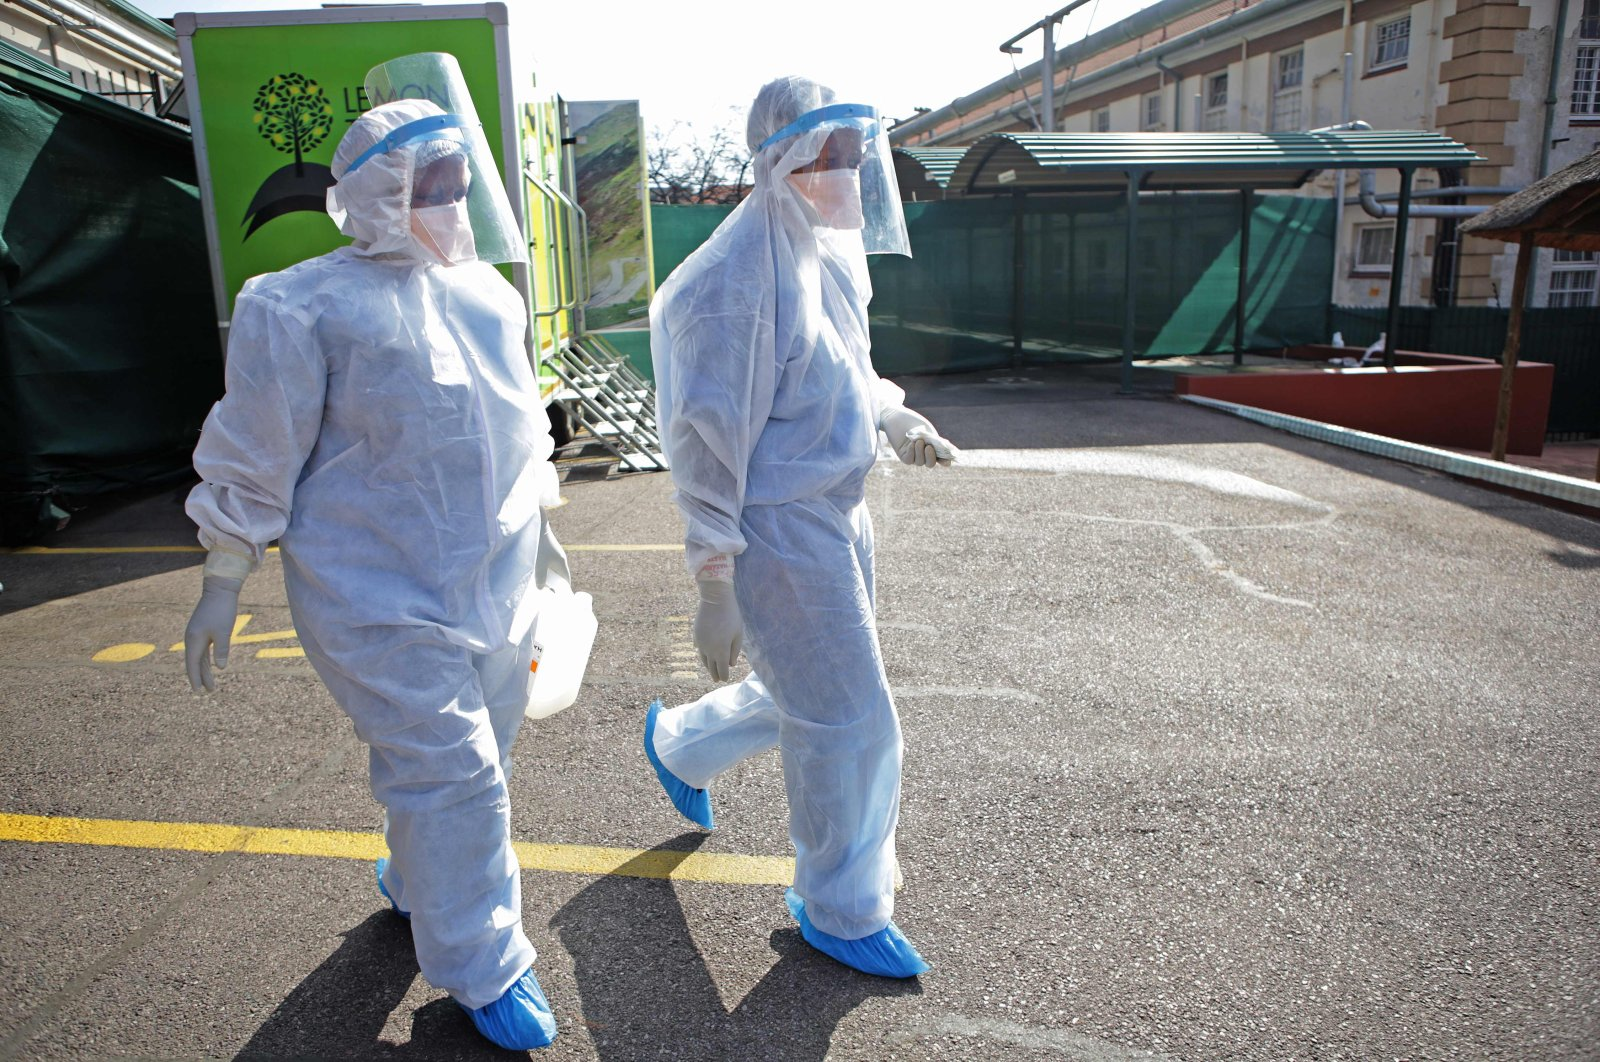 Professional health care workers wearing personal protective equipment (PPE) make their way to tents dedicated to the treatment of possible COVID-19 coronavirus patients at the Tshwane District Hospital, Pretoria, South Africa, July 10, 2020. (AFP Photo)